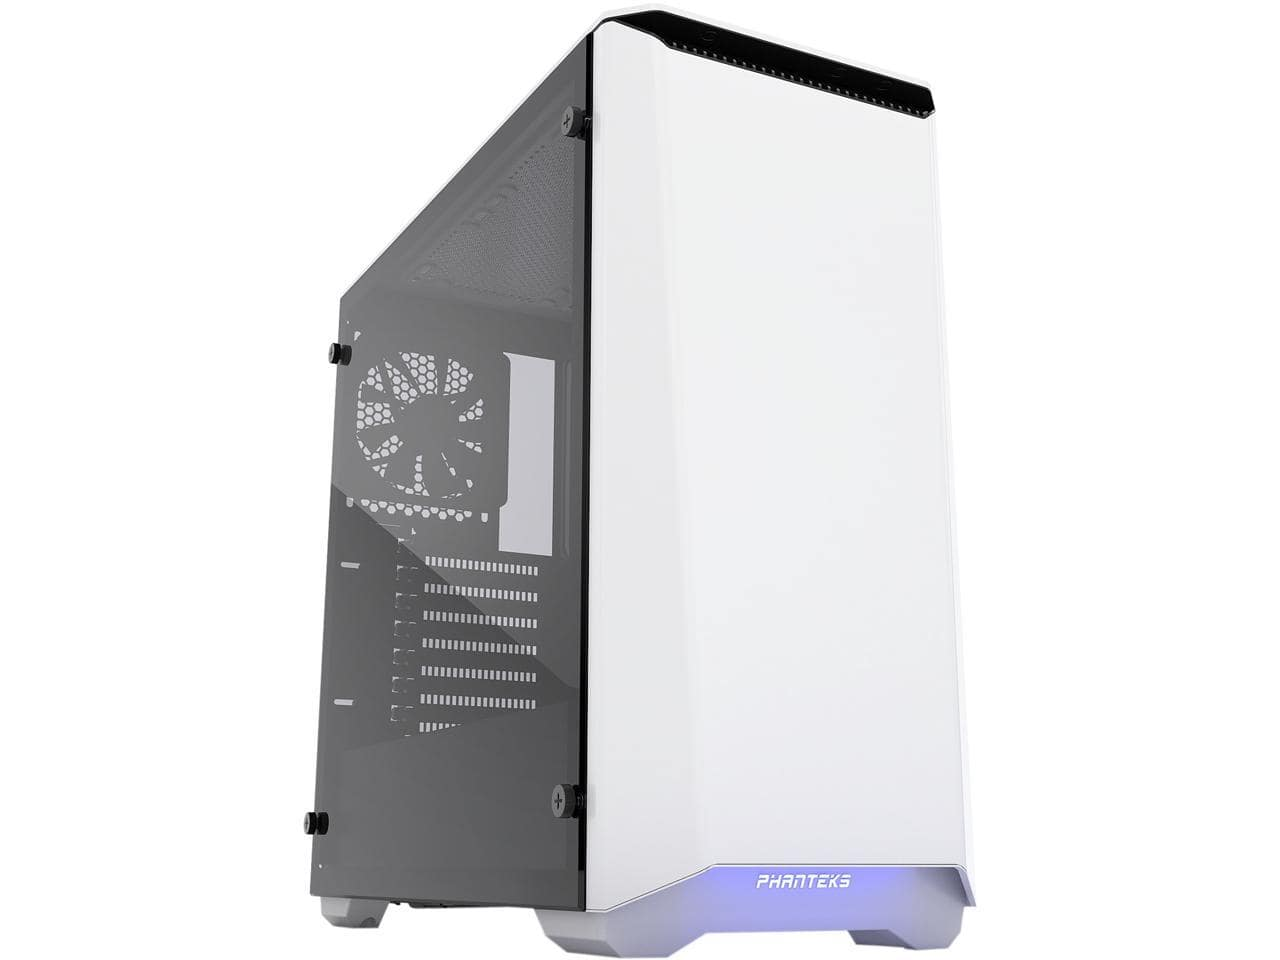 Phanteks Eclipse P400 Glacier White Tempered Glass/Steel ATX Mid Case $49.99 + Free shipping